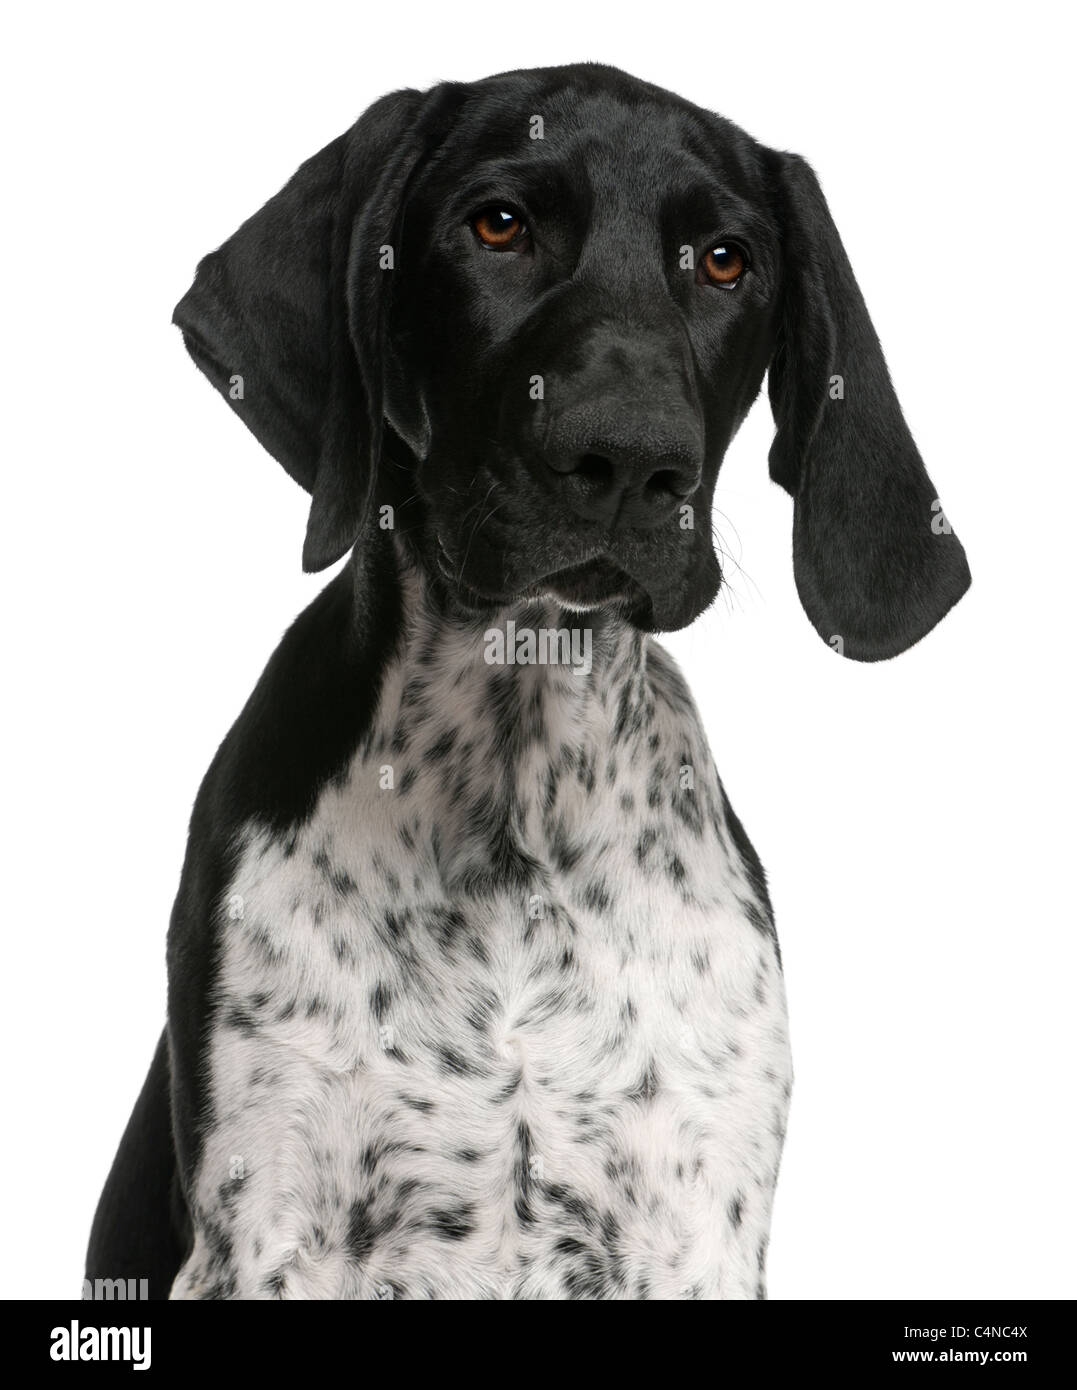 German Shorthaired Pointer Puppy Stock Photos & German Shorthaired ...